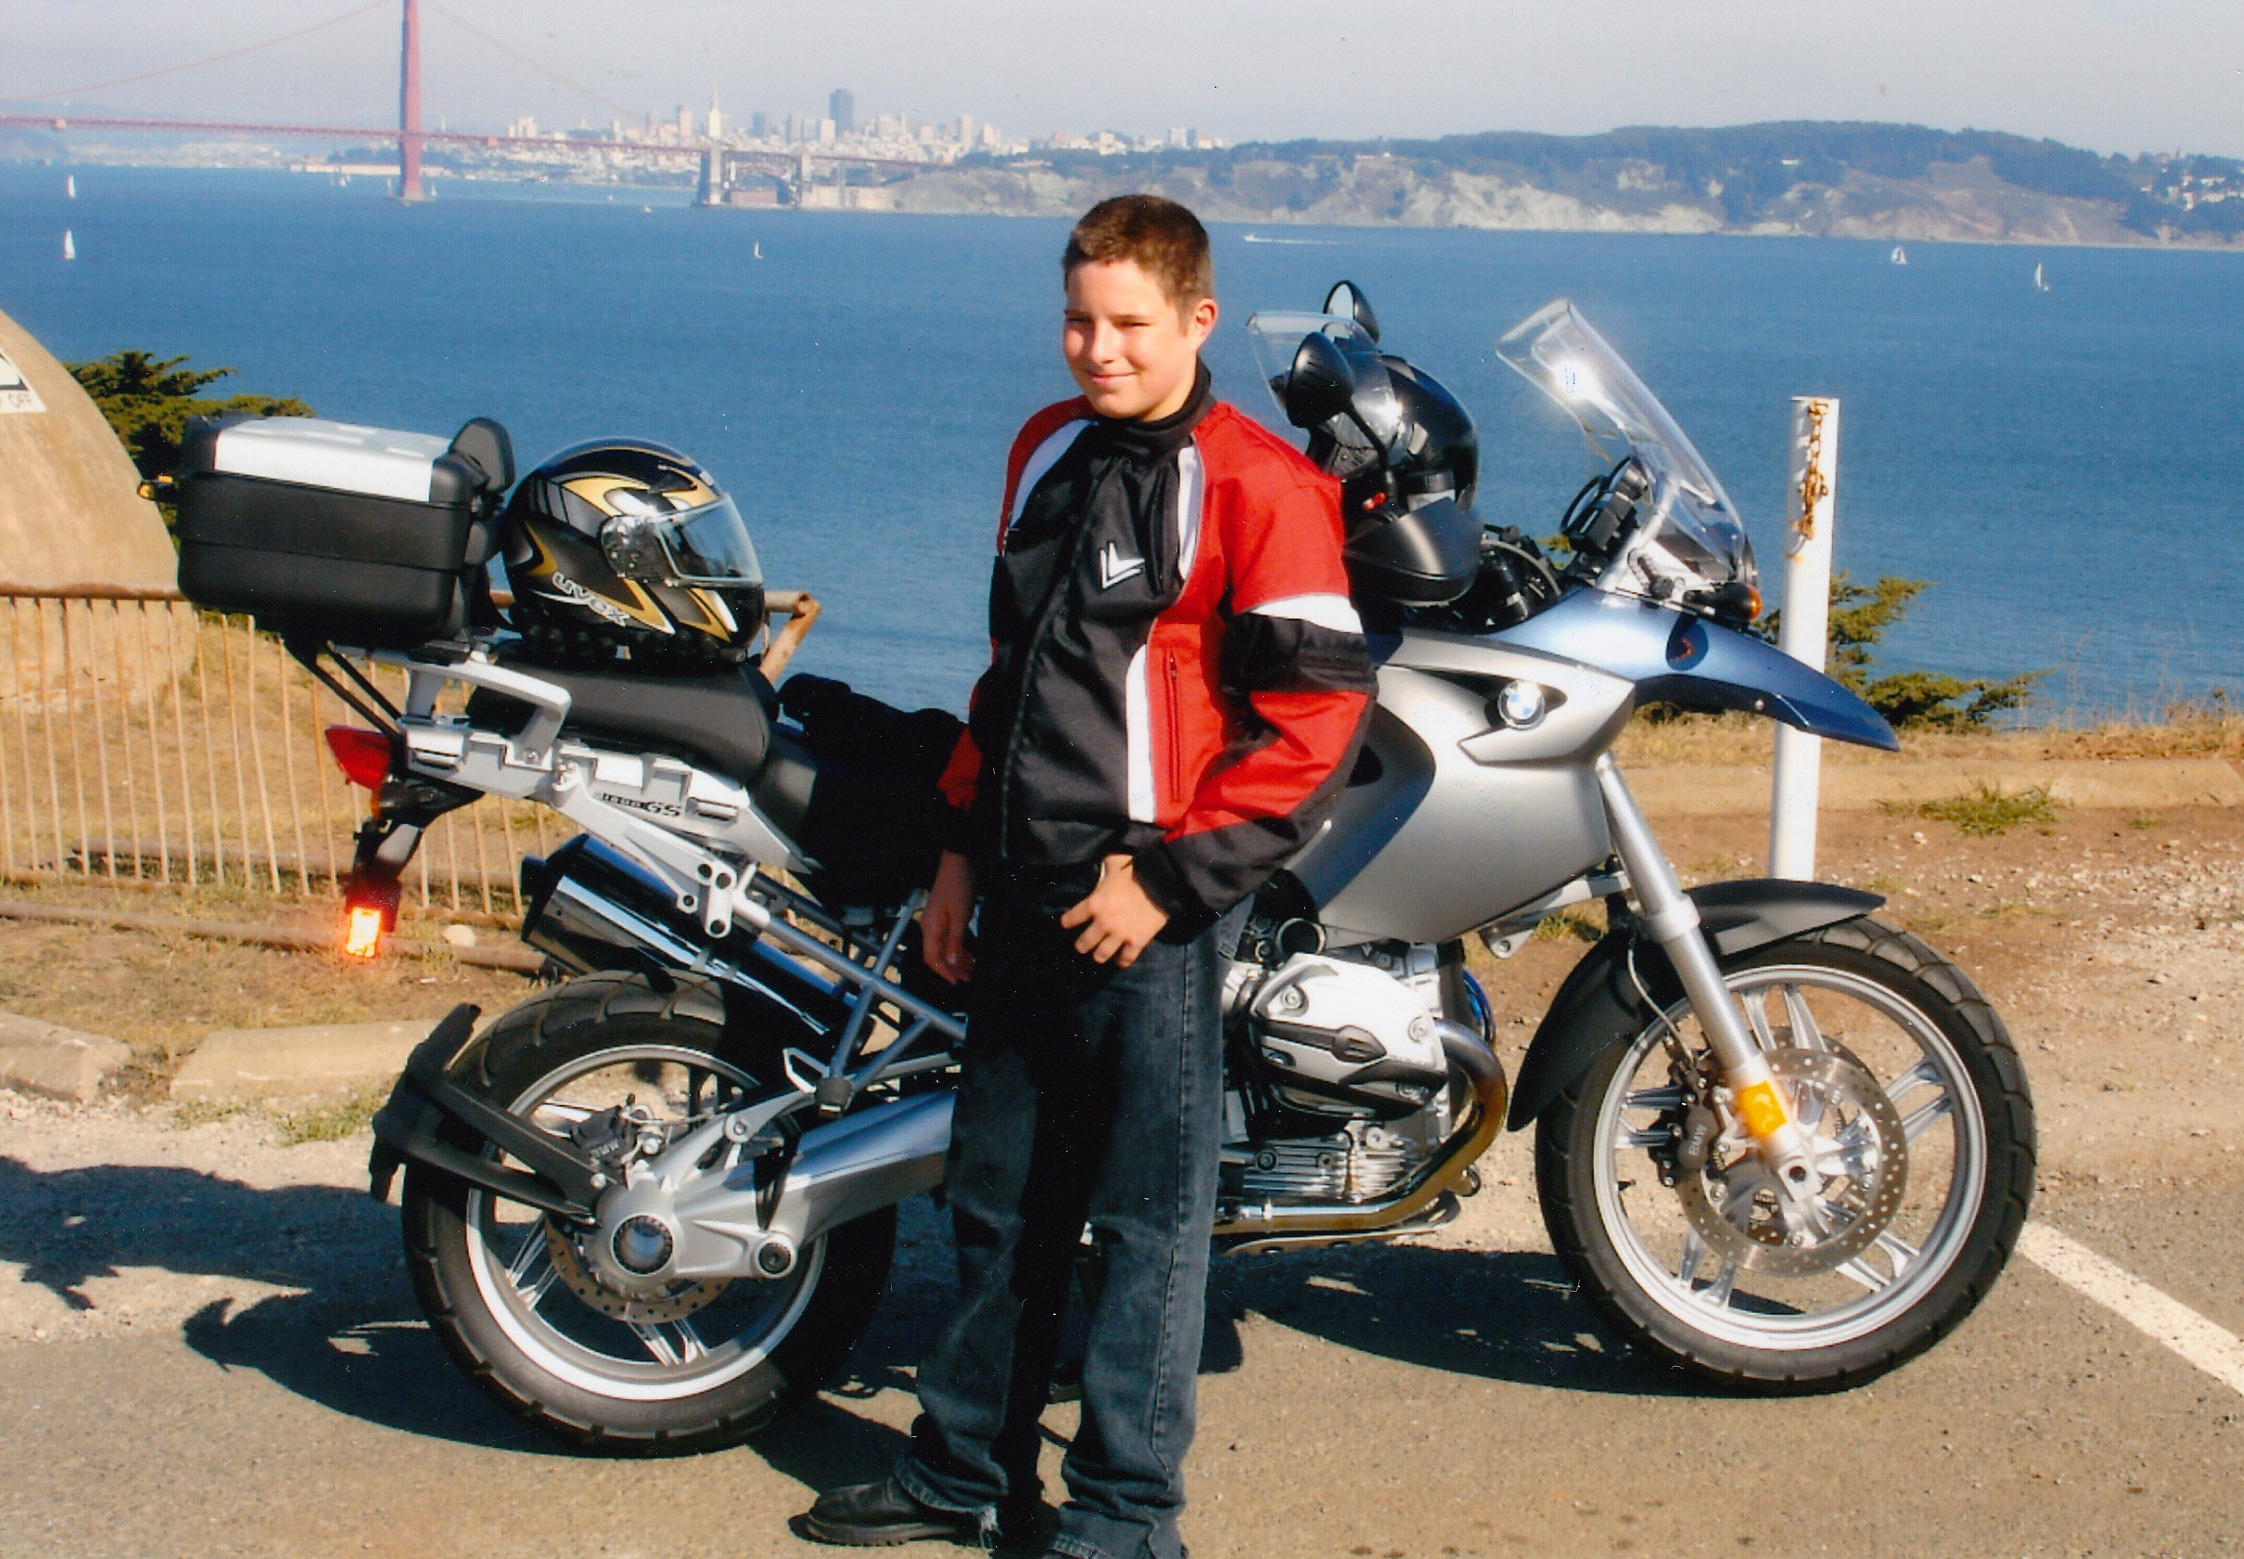 Schuljunge mit einer BMW R 1200 GS vor der Golden Gate Bridge in San Francisco